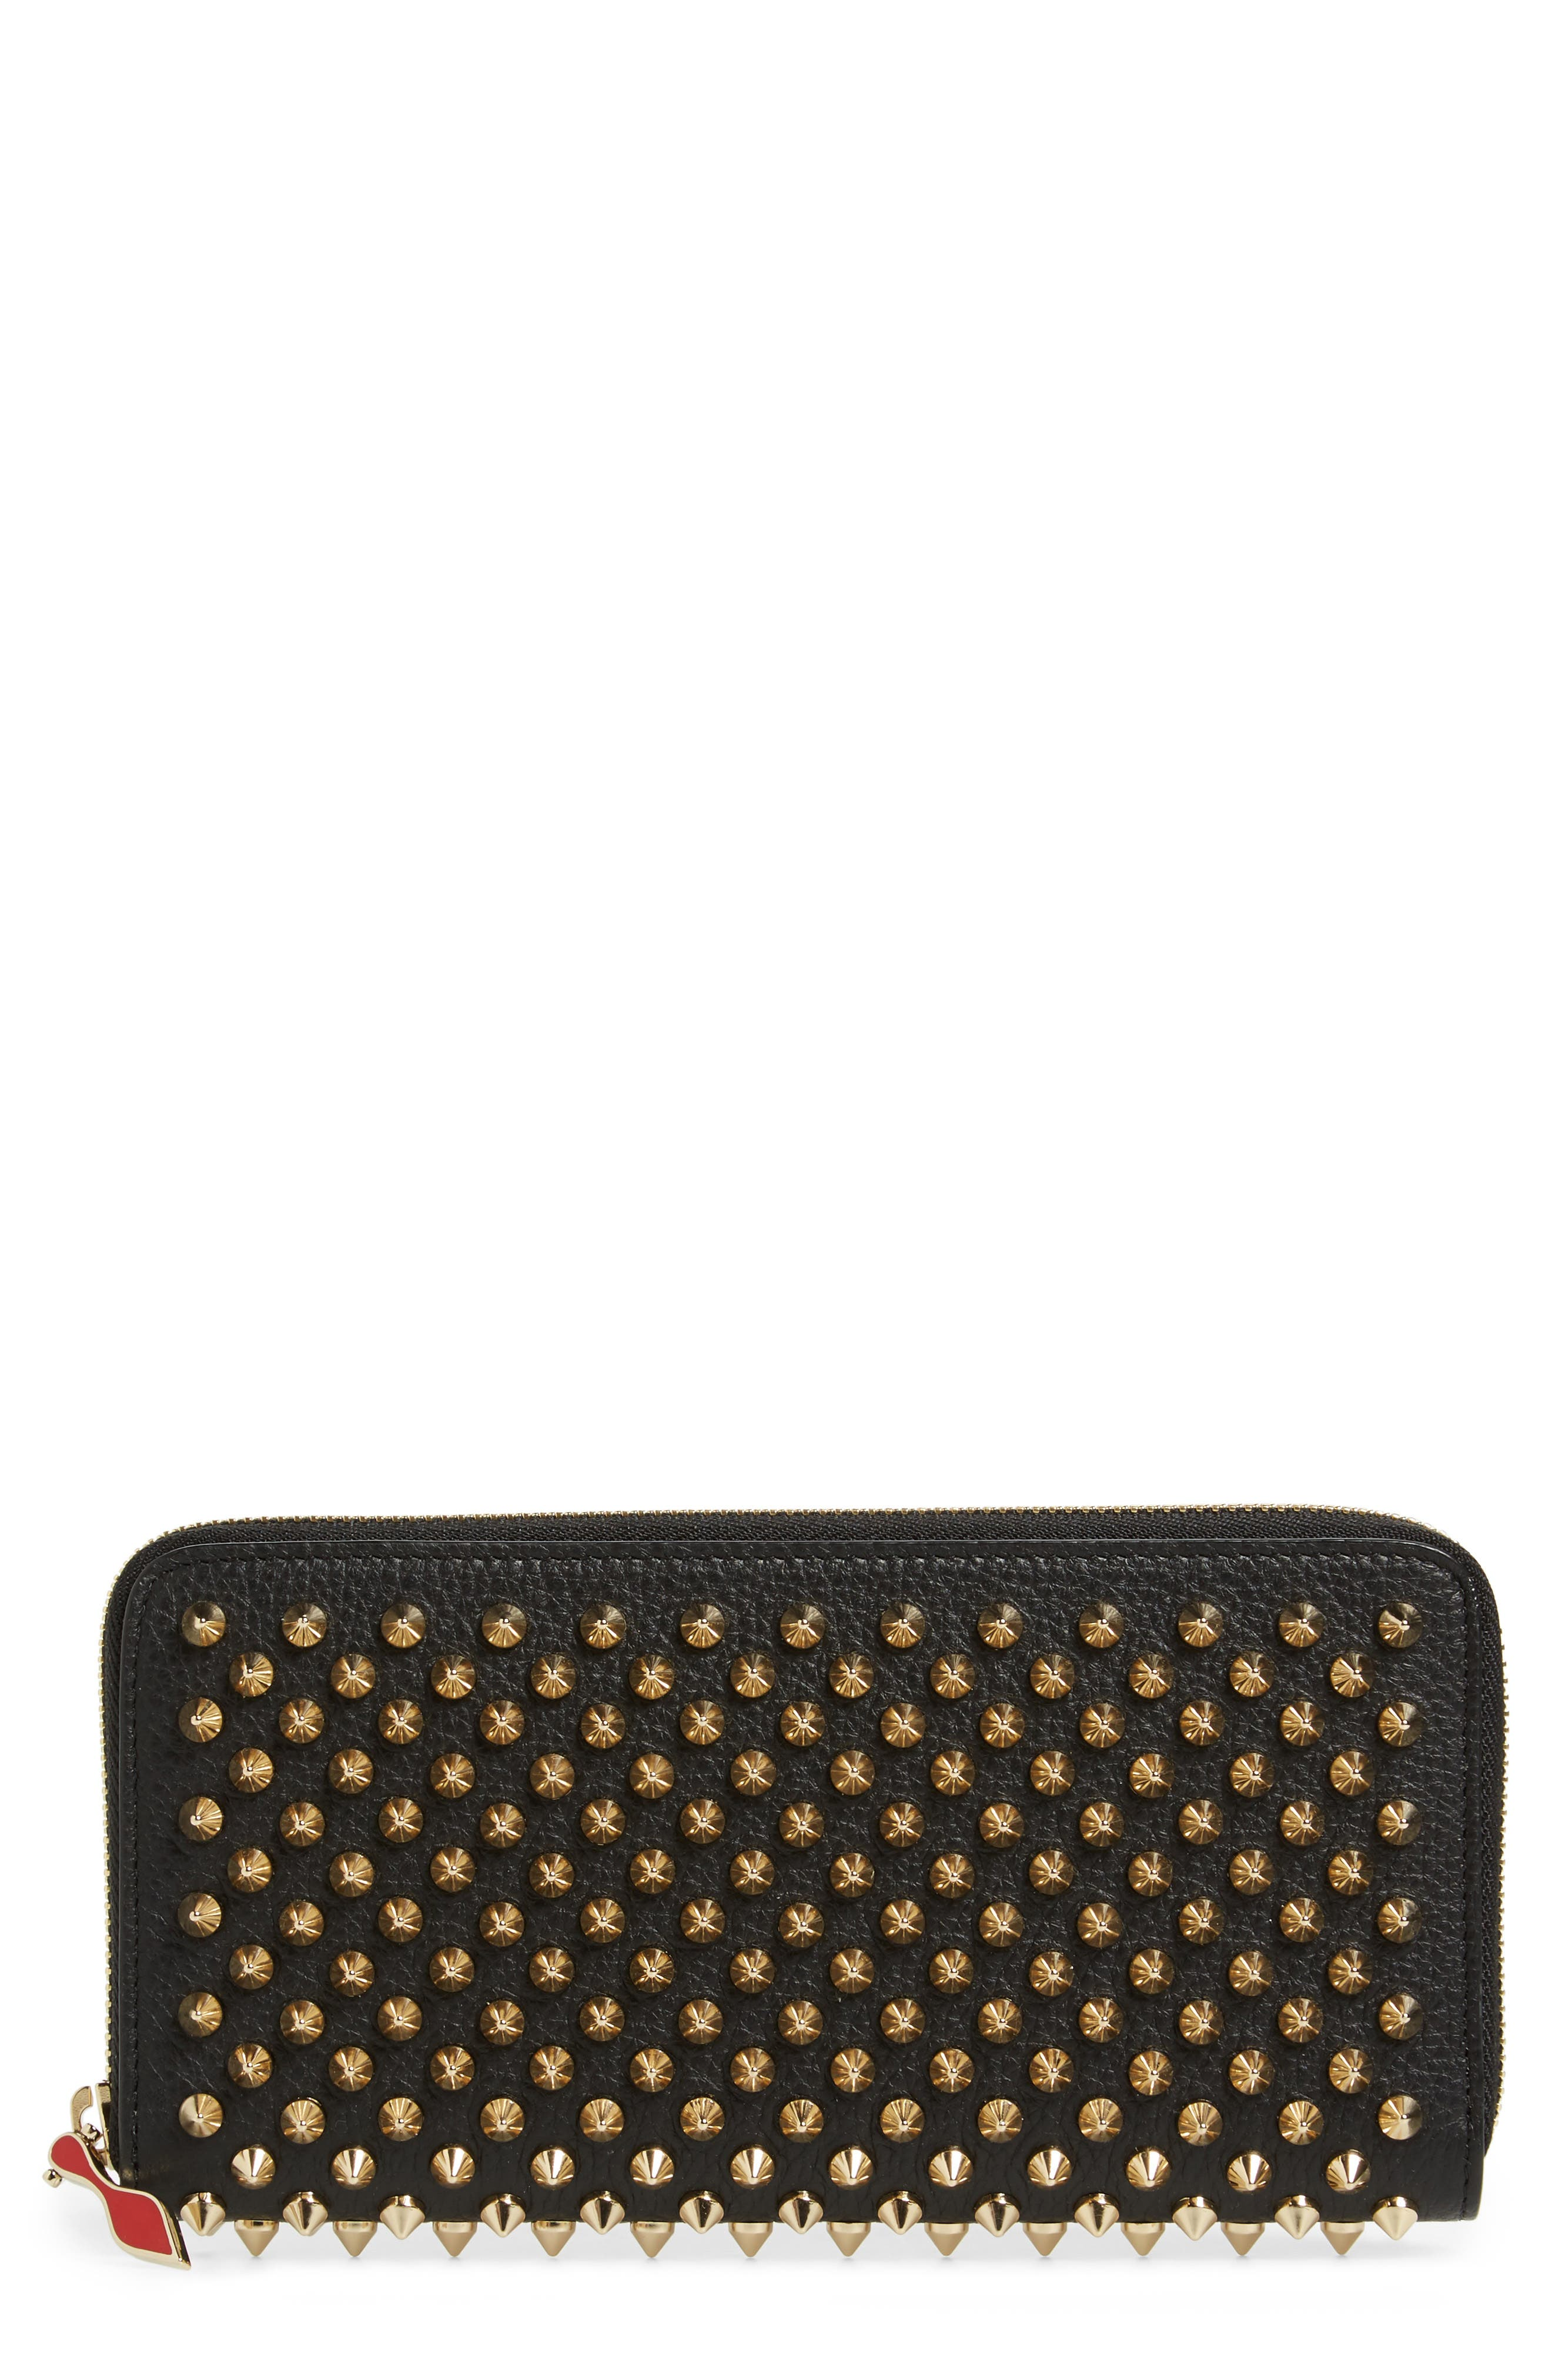 CHRISTIAN LOUBOUTIN Panettone Spiked Calfskin Wallet, Main, color, BLACK/ GOLD